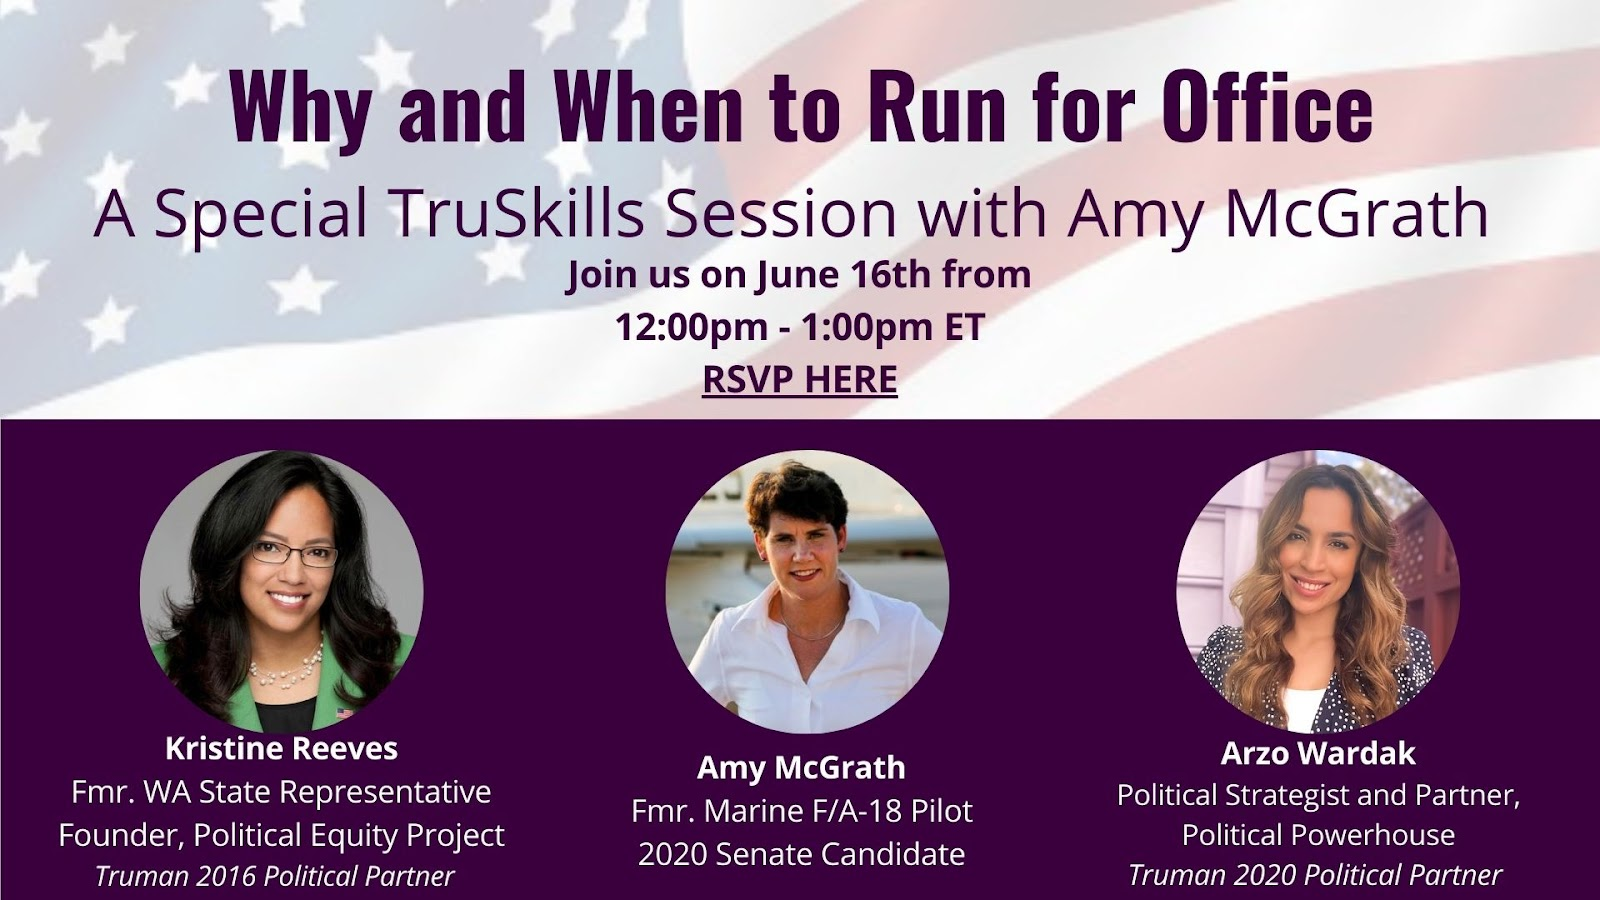 Why and When to Run for Office: A Special TruSkills Session with Amy McGrath